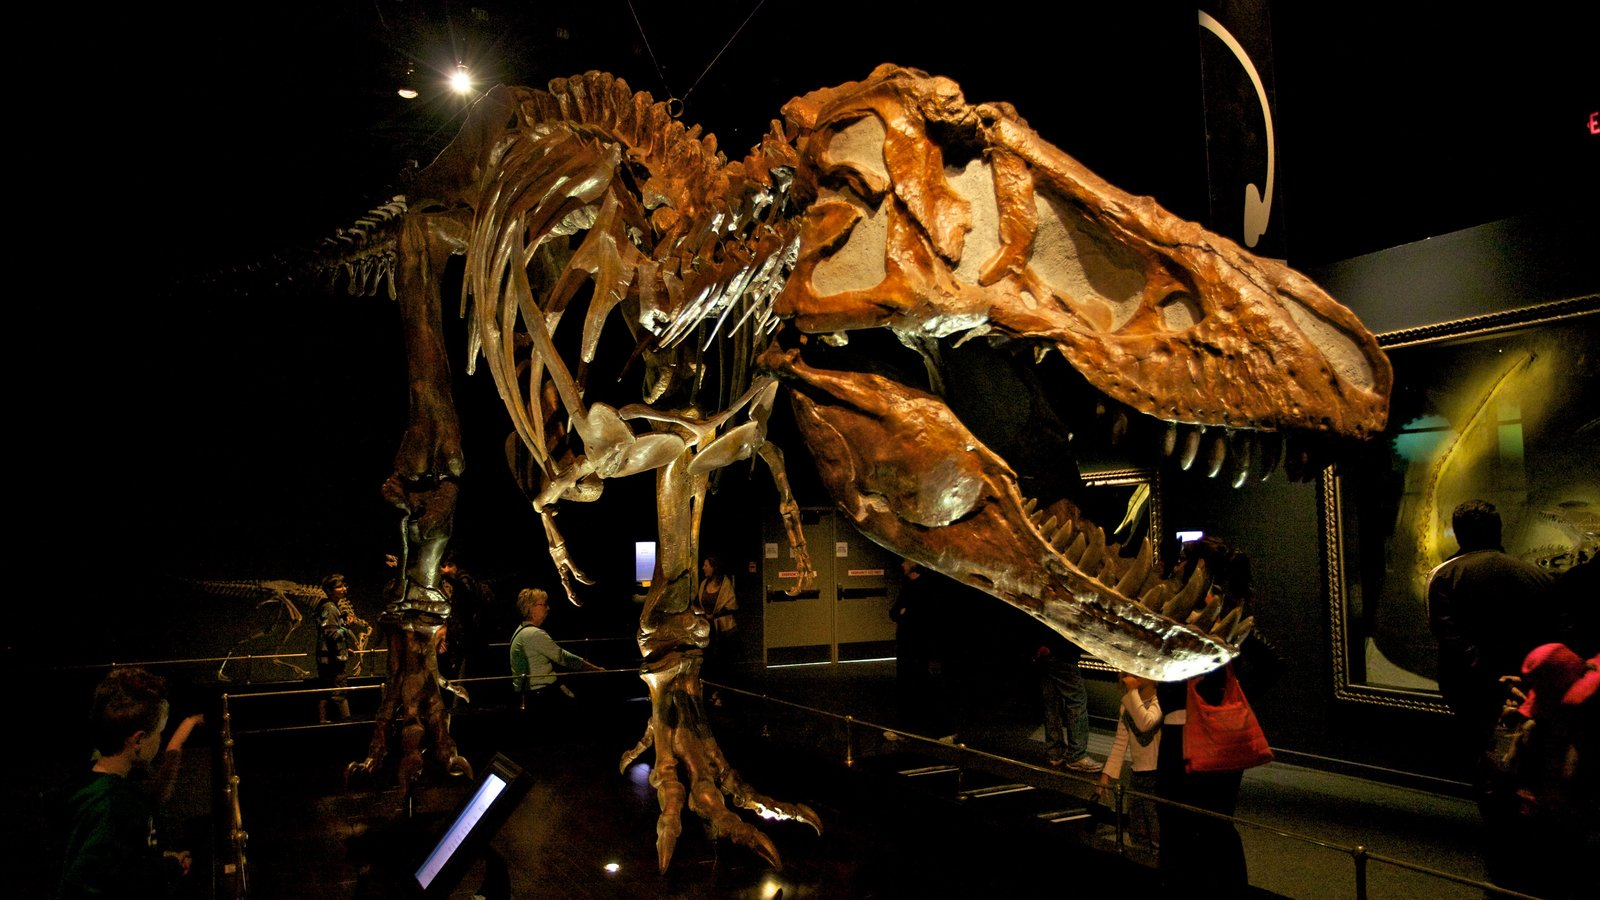 Royal Tyrrell Museum which includes interior views